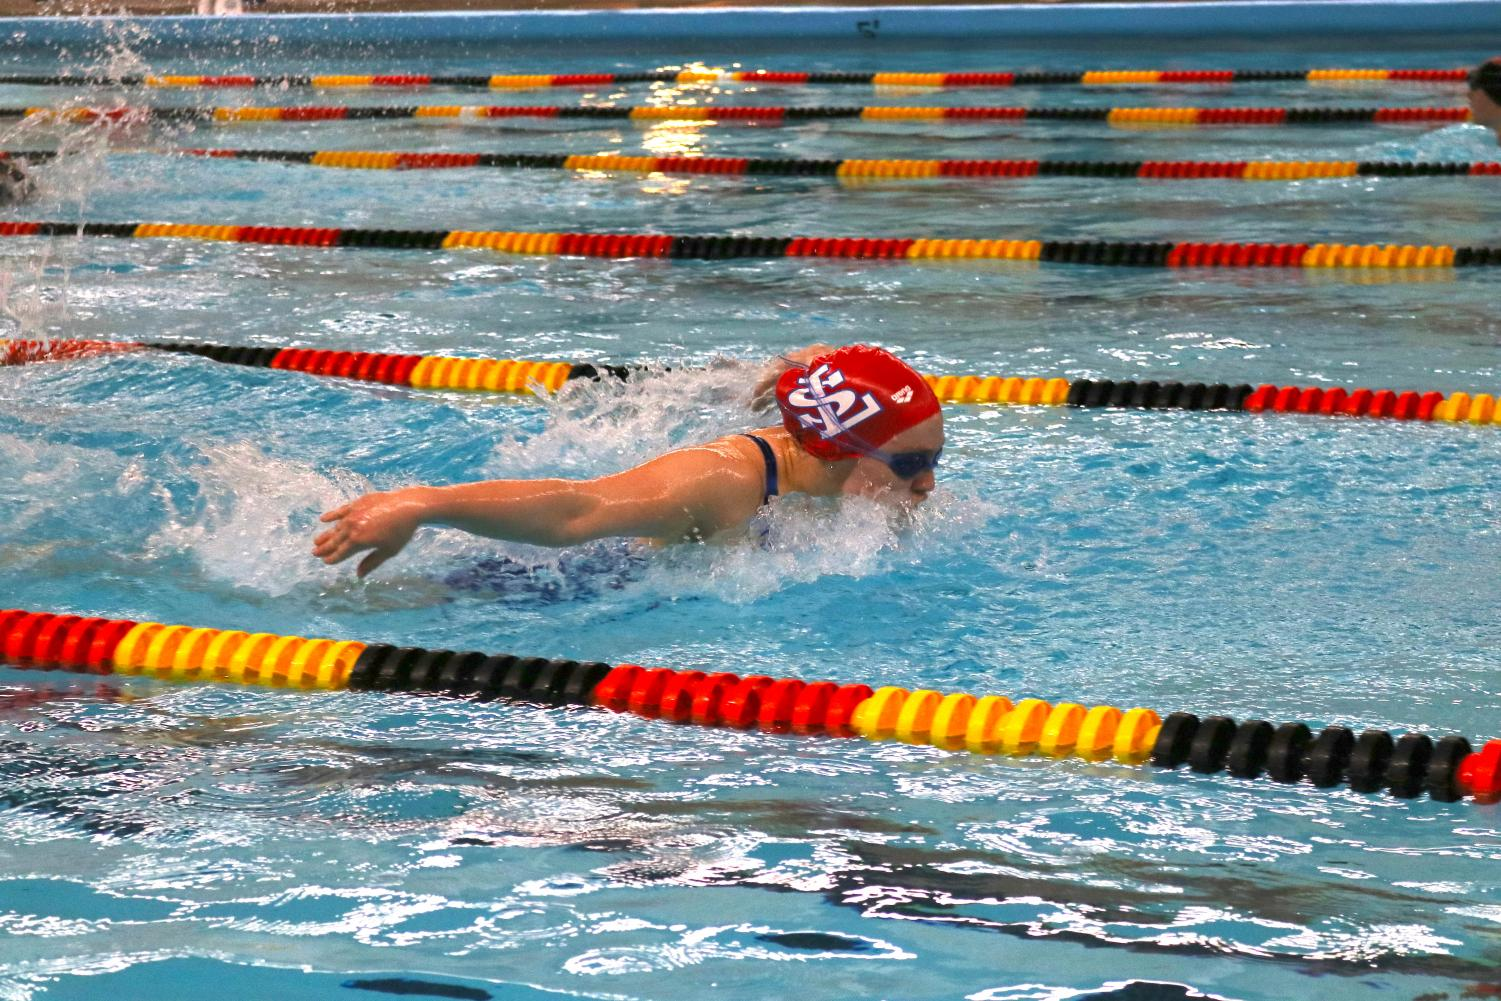 The+La+Salle+swim+team+beat+both+Milwaukie+and+Scappoose+at+the+NWOC+dual+swim+meet.